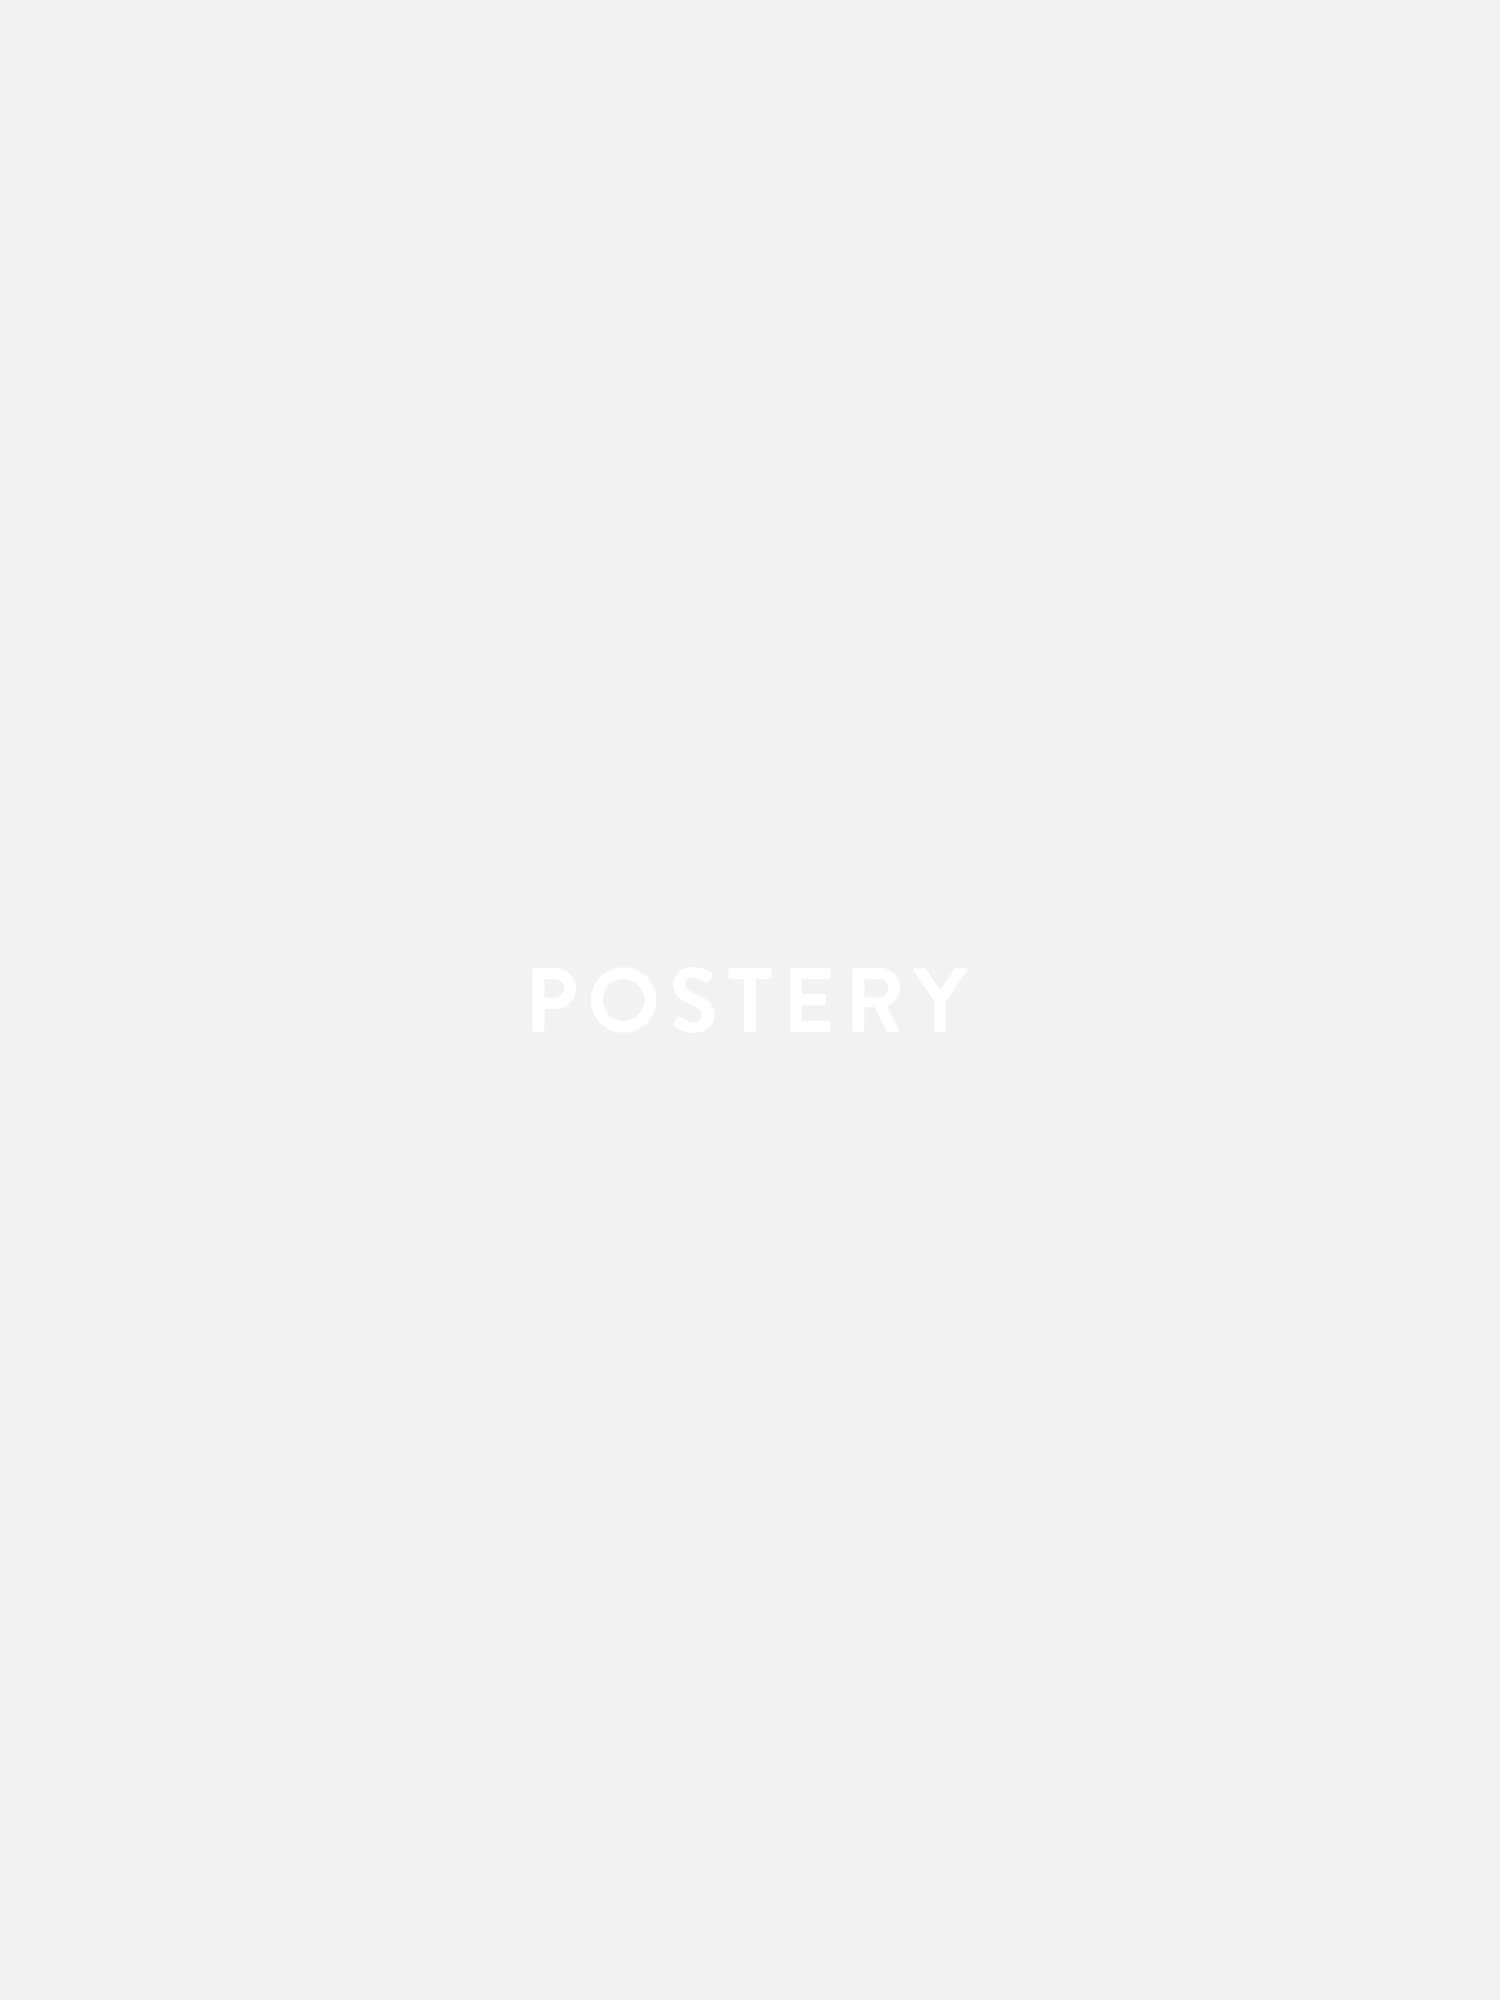 William Morris Inspired Birds Poster